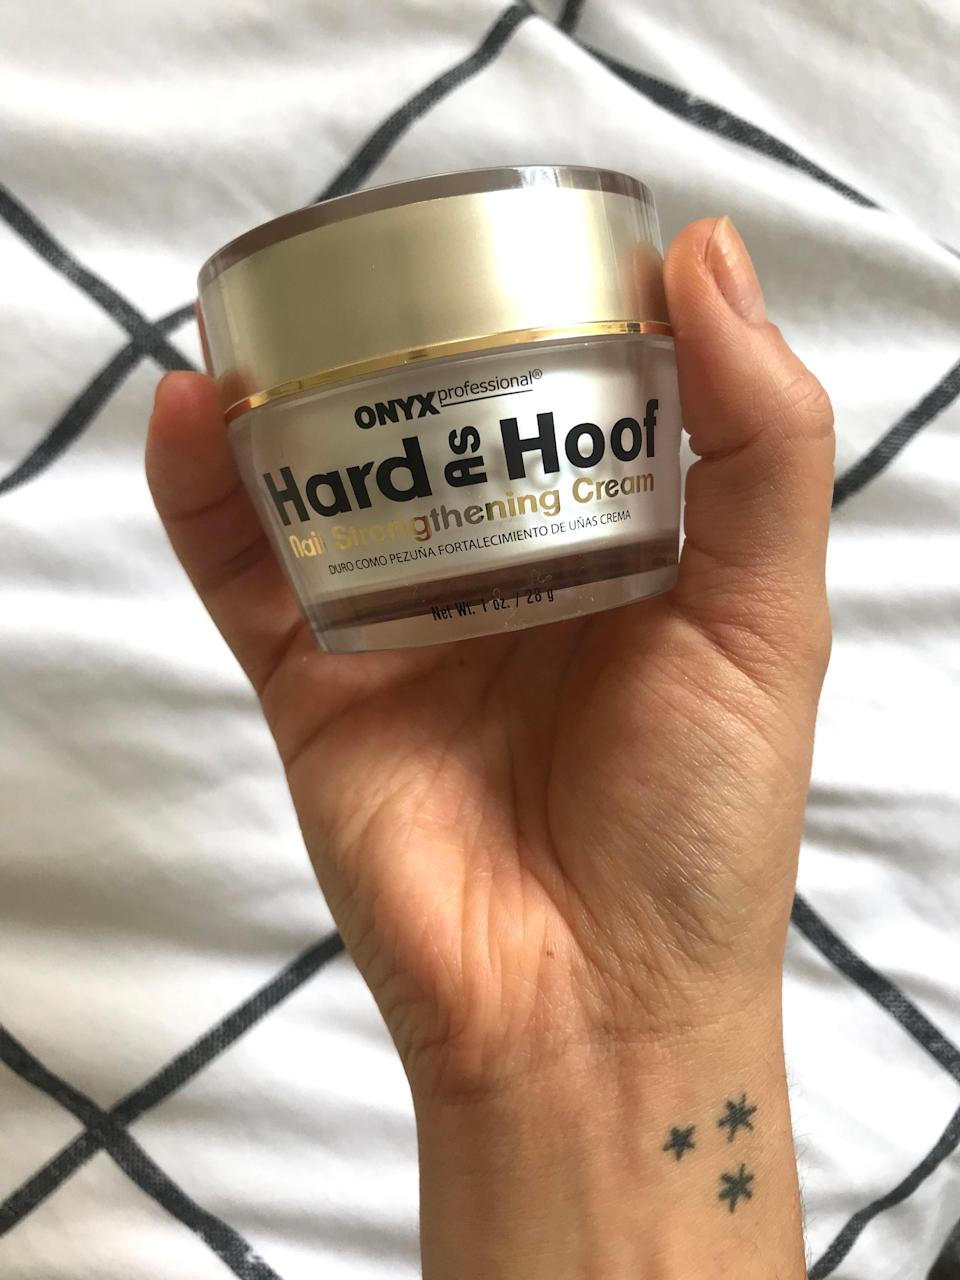 """<h3>Onyx Professional Hard As Hoof Nail Strengthening Cream</h3><br>This. Stuff. Is. The. Sh*t. As a total home manicure fiend, I've tried nearly every nail brand out there — also, as the R29 Shopping team's resident Virgo, I'm naturally obsessed with all things cuticle care. I recently moved apartments which left my nails utterly wrecked and had been previously testing a fancy-pants brand (that will remain unnamed) of cuticle balm when this gem arrived at my door. <br><br>While the fancier stuff was perfectly nice, Hard As Hoof is a third of the price — and even if it weren't, I'd still like it <em>even more</em>. It has a semi-solid buttery texture that you need to emulsify with the heat from your fingers, so I like to scoop out a tiny amount and melt it as I rub it into my nails and cuticles. I also take <a href=""""https://amzn.to/34N0bI4"""" rel=""""nofollow noopener"""" target=""""_blank"""" data-ylk=""""slk:vegan biotin"""" class=""""link rapid-noclick-resp"""">vegan biotin</a> to help with splitting and nail growth but, a few weeks in, I already feel like a regular application of this stuff has really made a difference in the look and feel of my nails. <br><br><strong>Final Verdict: Cart (ASAP)</strong><br><br><strong>Onyx Professional</strong> Hard As Hoof Nail Strengthening Cream, $, available at <a href=""""https://amzn.to/3jq1EIr"""" rel=""""nofollow noopener"""" target=""""_blank"""" data-ylk=""""slk:Amazon"""" class=""""link rapid-noclick-resp"""">Amazon</a>"""